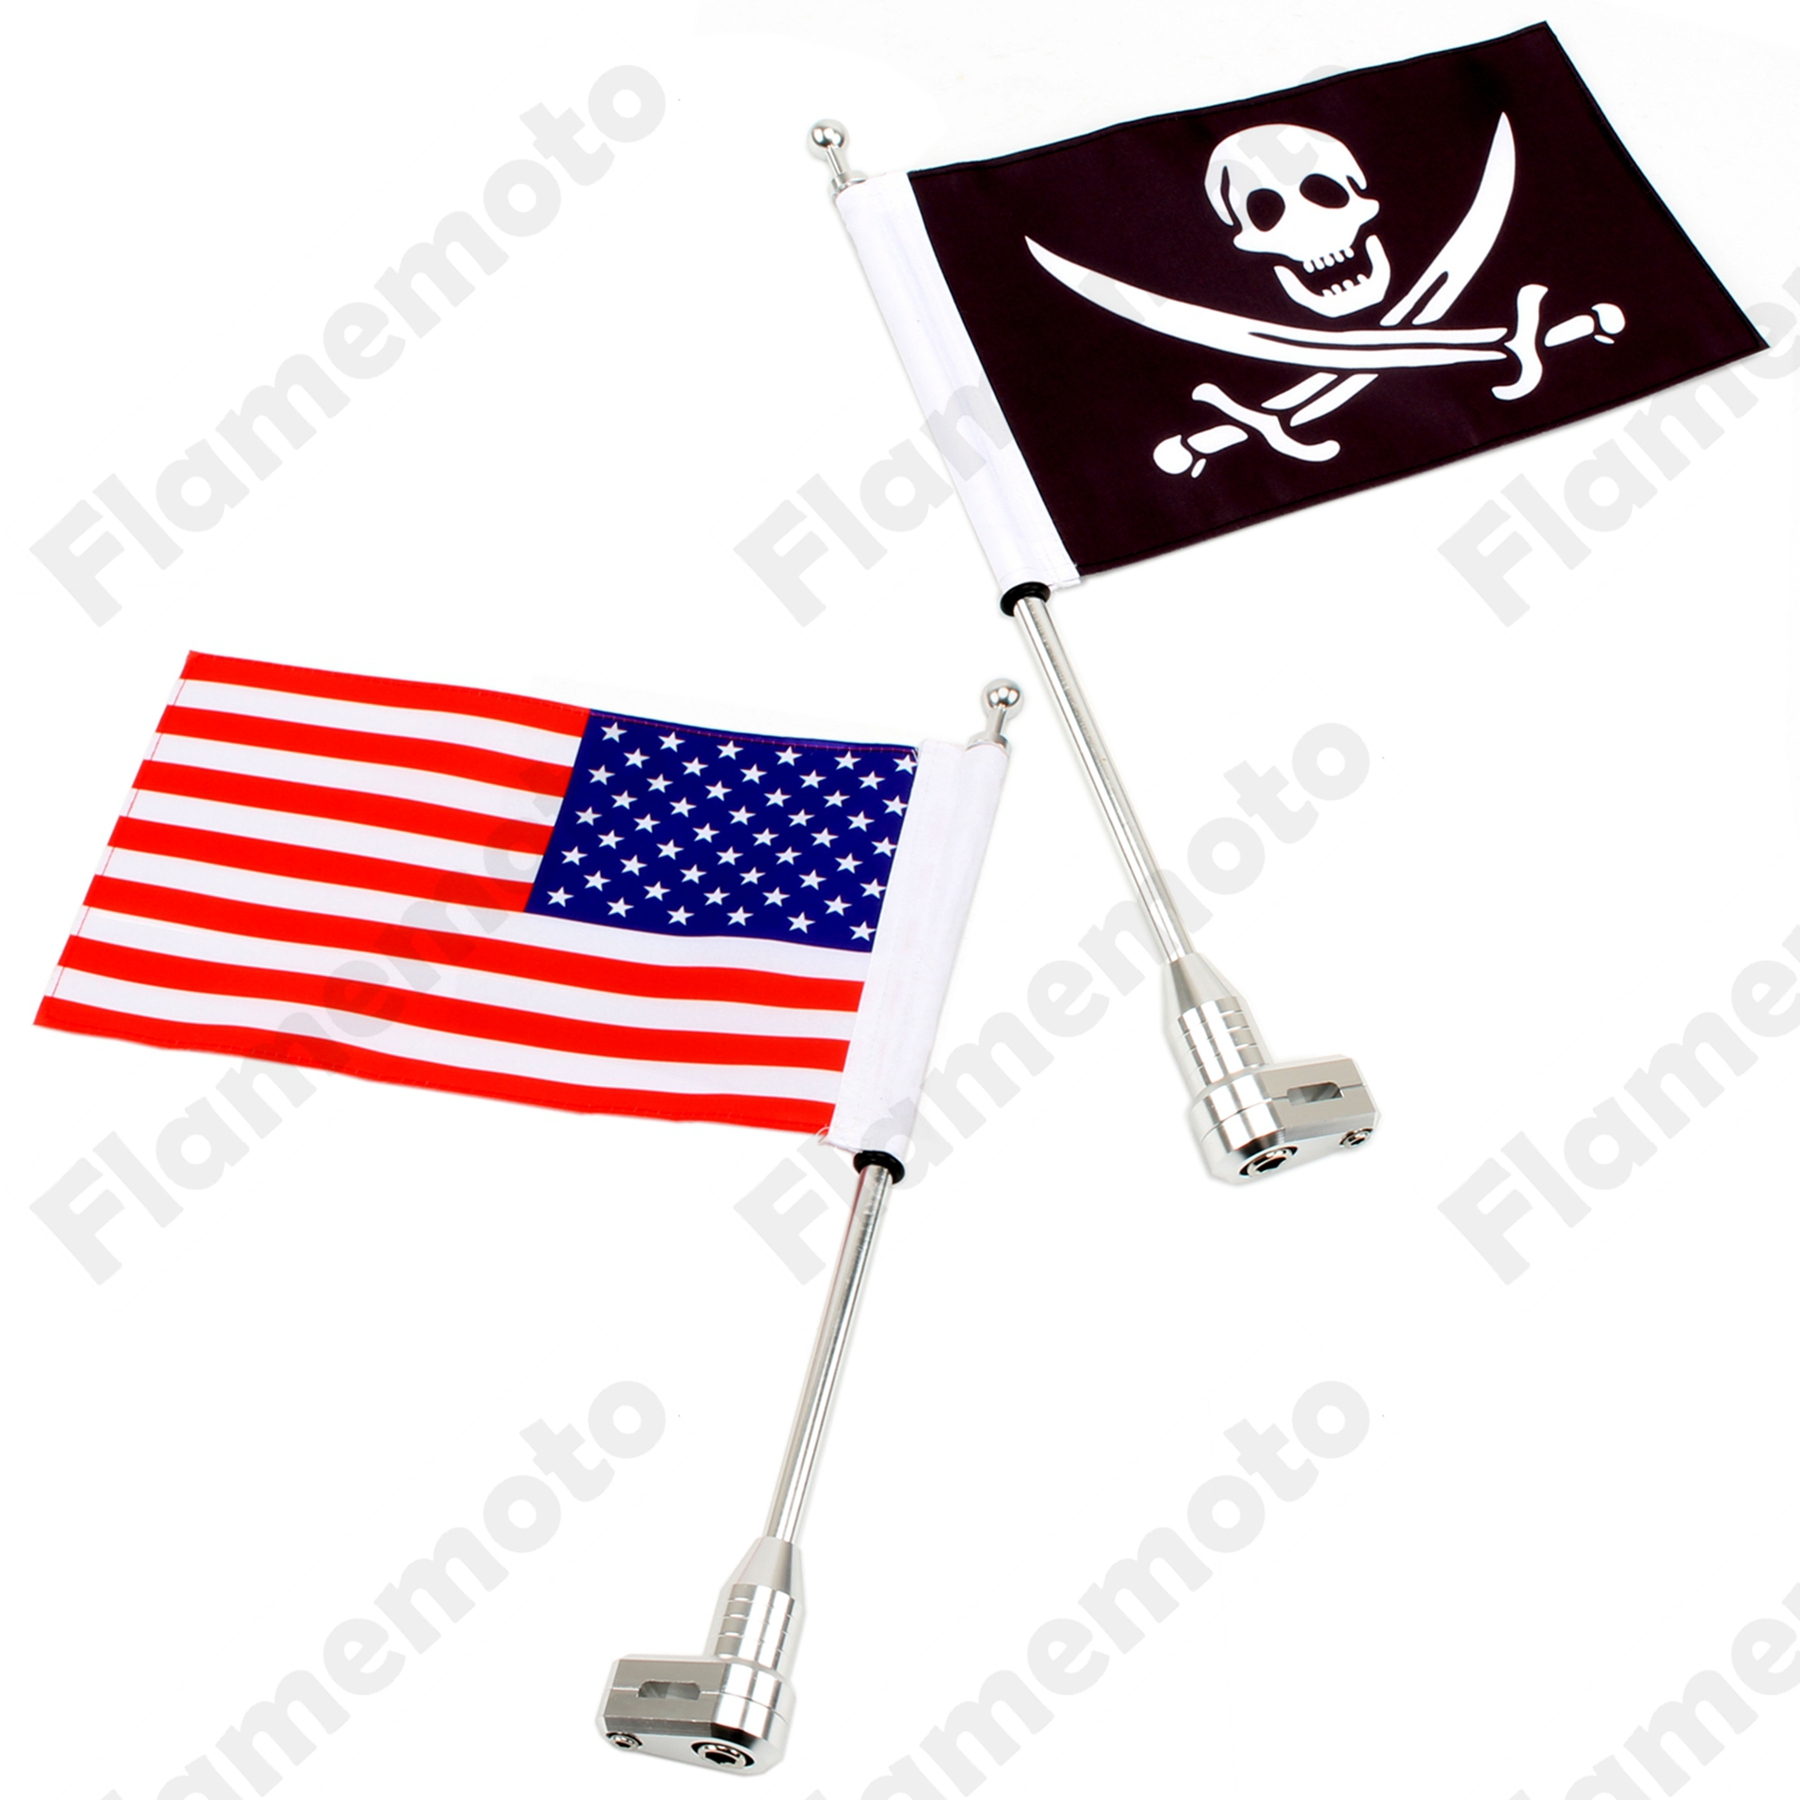 New Motorcycle Bike Accessories Silver Rear Luggage Rack Mount Flag Pole with USA And Skull Flag For Harley Dyna UNDEFINED  компрессометр fobo bike silver